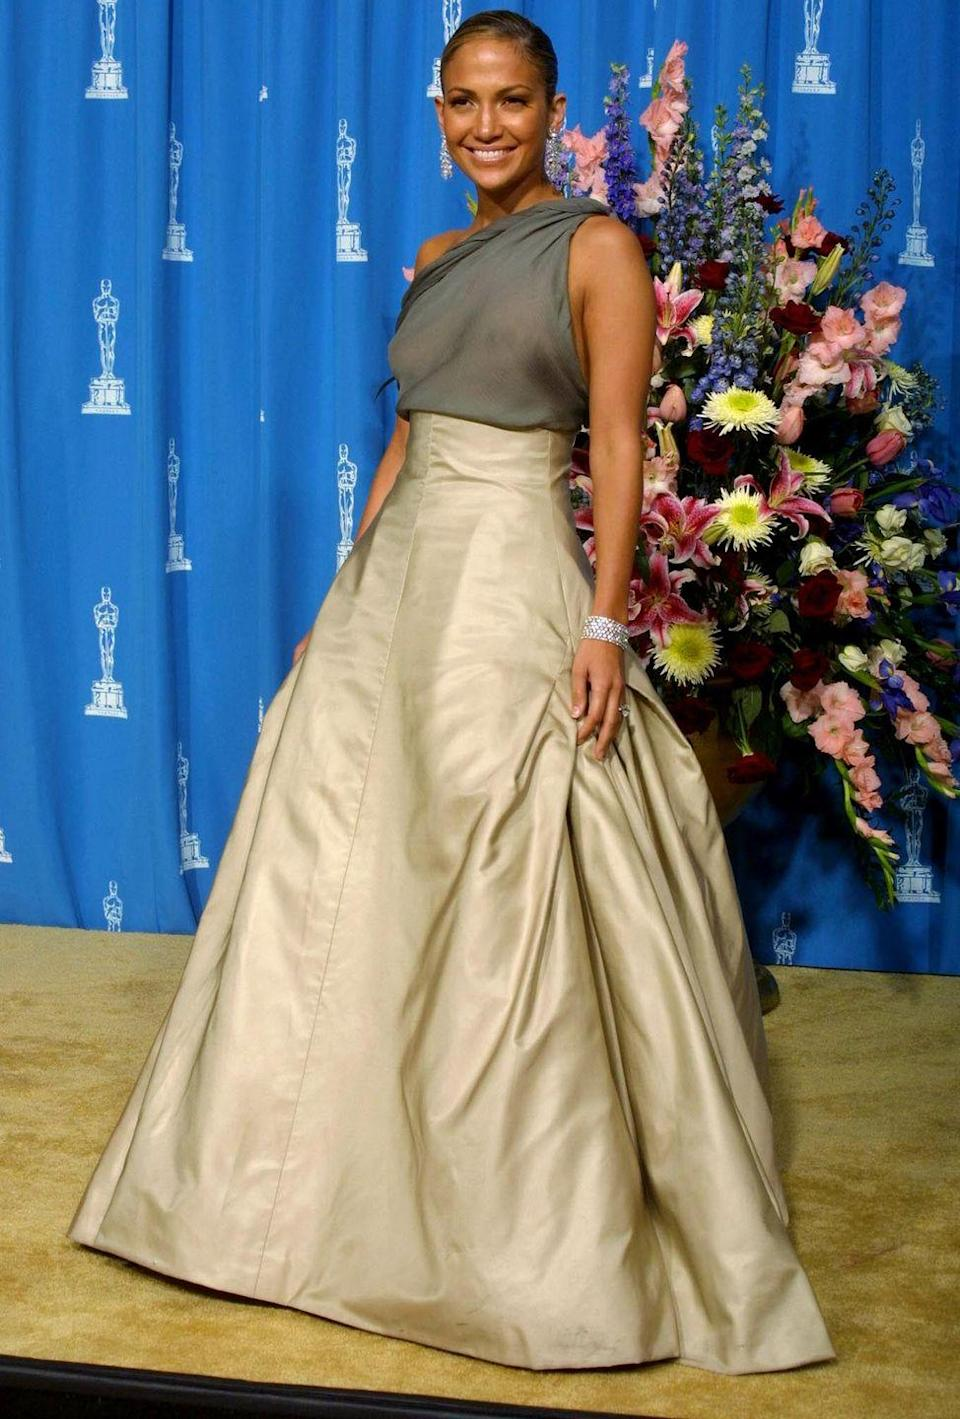 <p><strong>When: </strong>March 2001</p><p><strong>Where: </strong>The Academy Awards</p><p><strong>Wearing: </strong>Chanel</p>